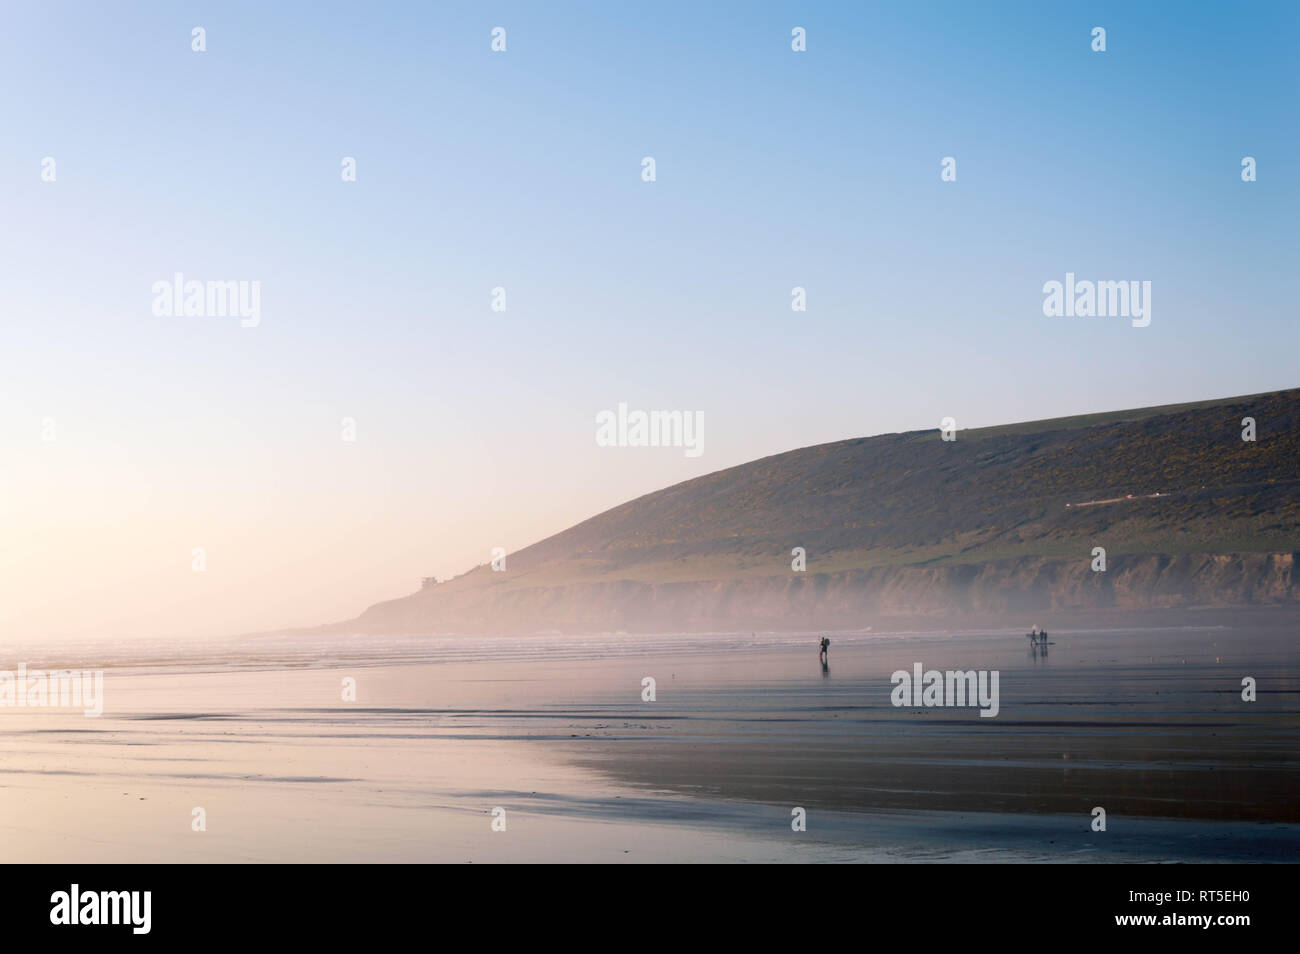 surfers silhouetted walking on the beach at sunset on a warm February day 2019. Saunton Sands, Devon, UK. 27th feb 2019. - Stock Image